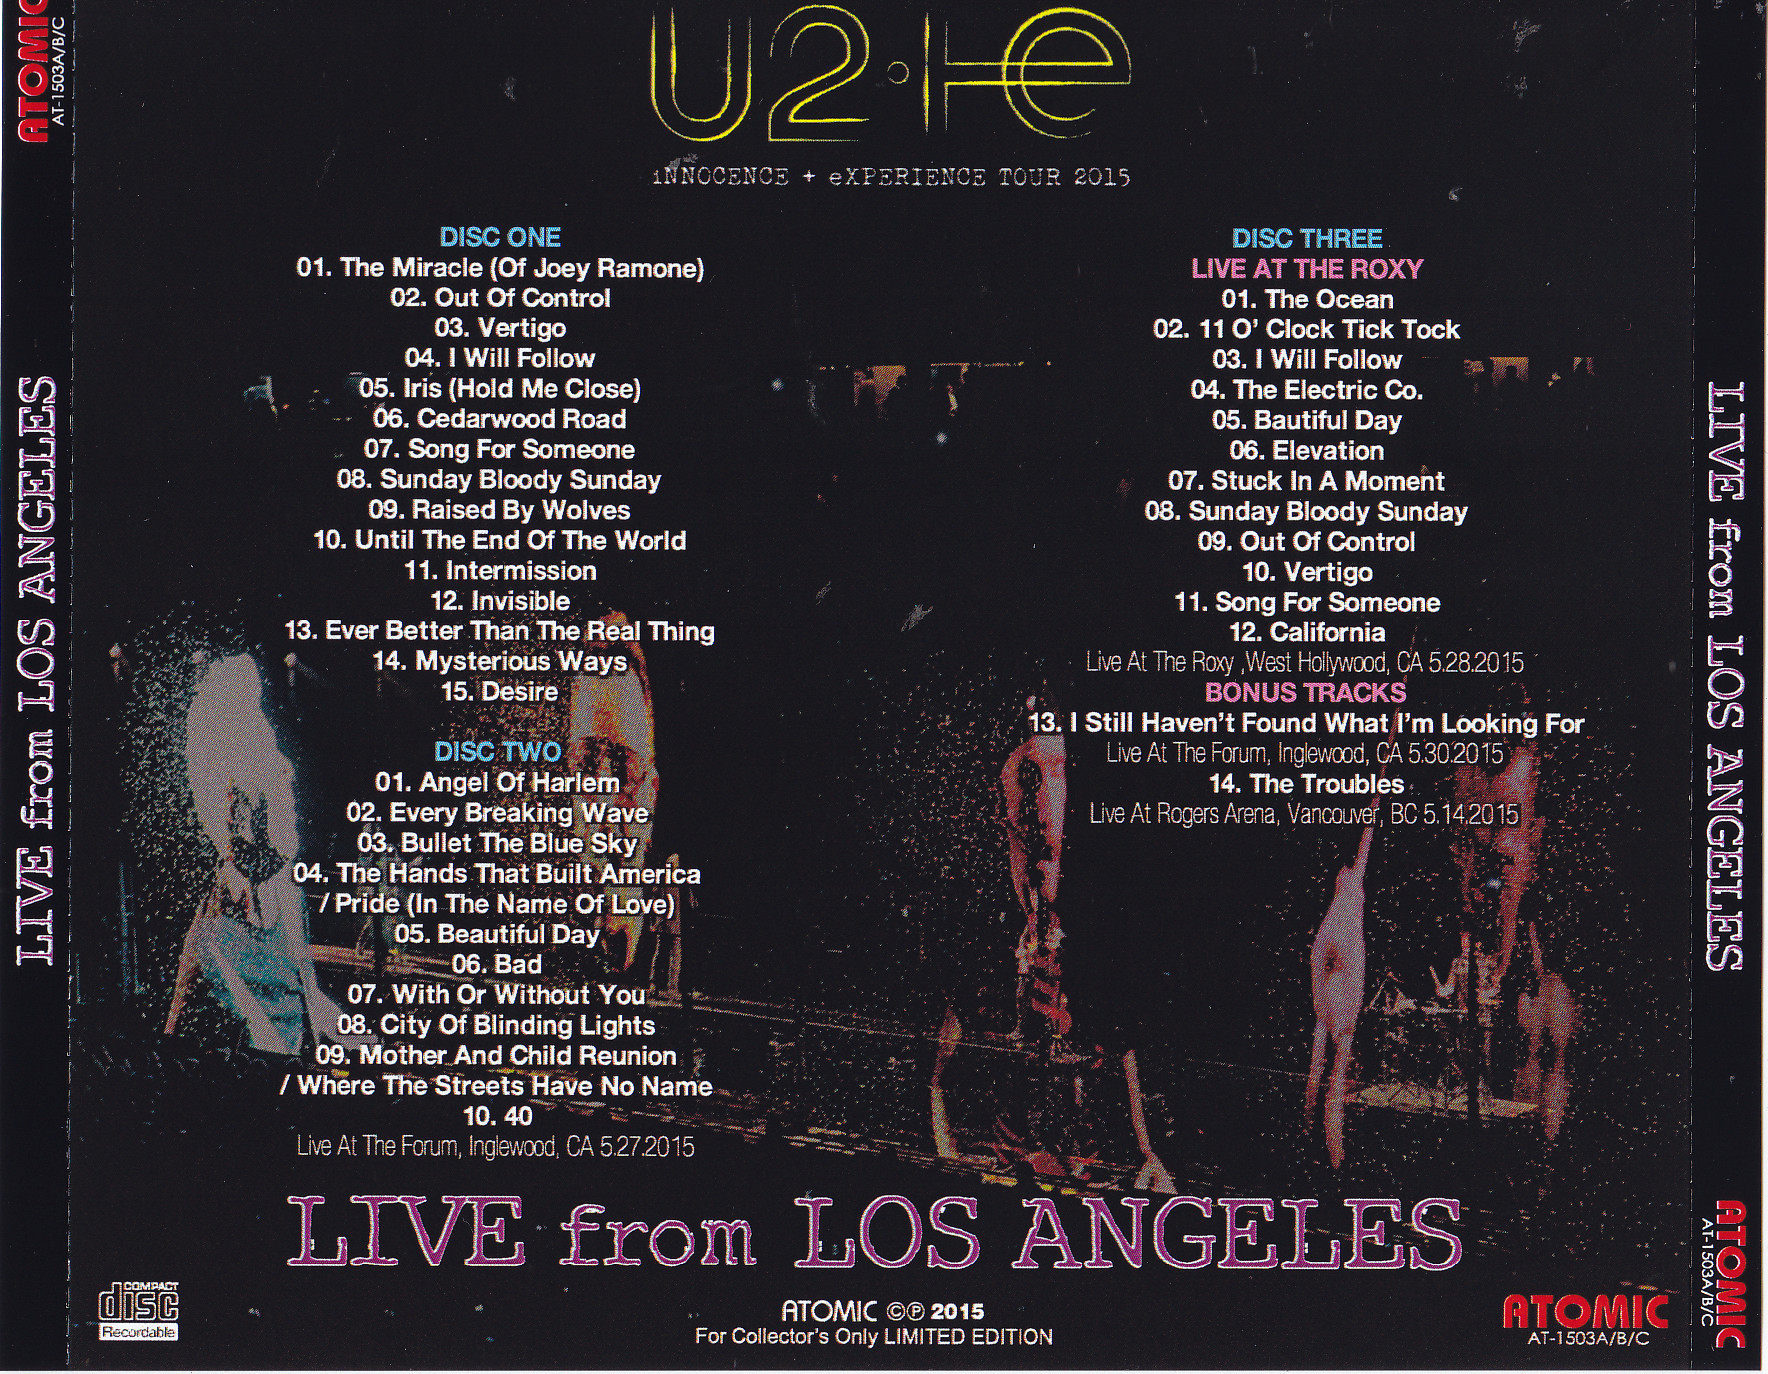 U2 - Innocence + Experience Tour 2015 Live From Los Angeles (3Pro-CDR)  Atomic  AT-1503A/B/C